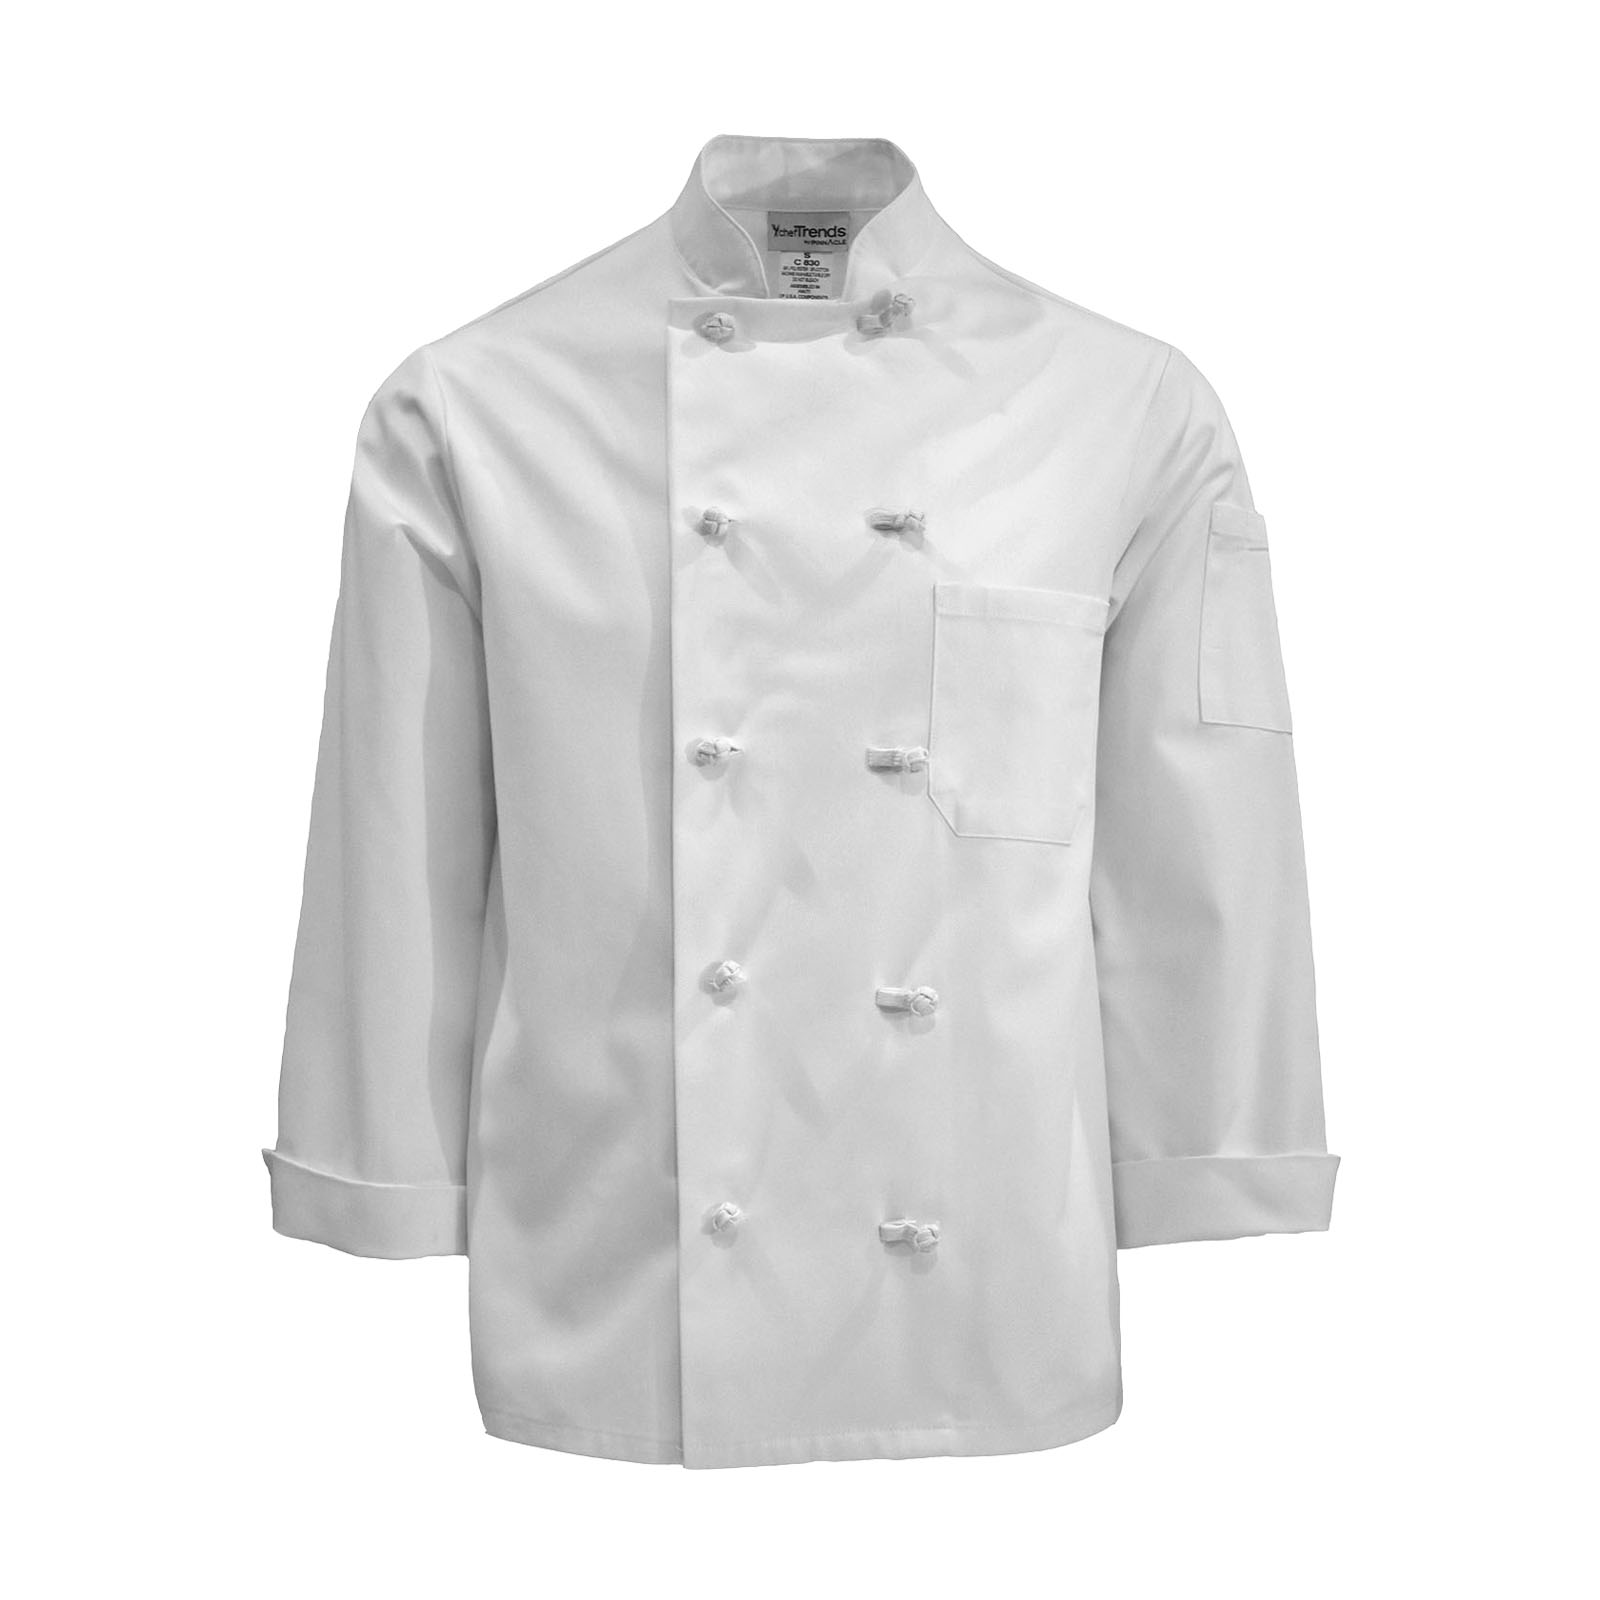 C830-Chef Coat, Knot Buttons, Plus Blend, Full Sleeves